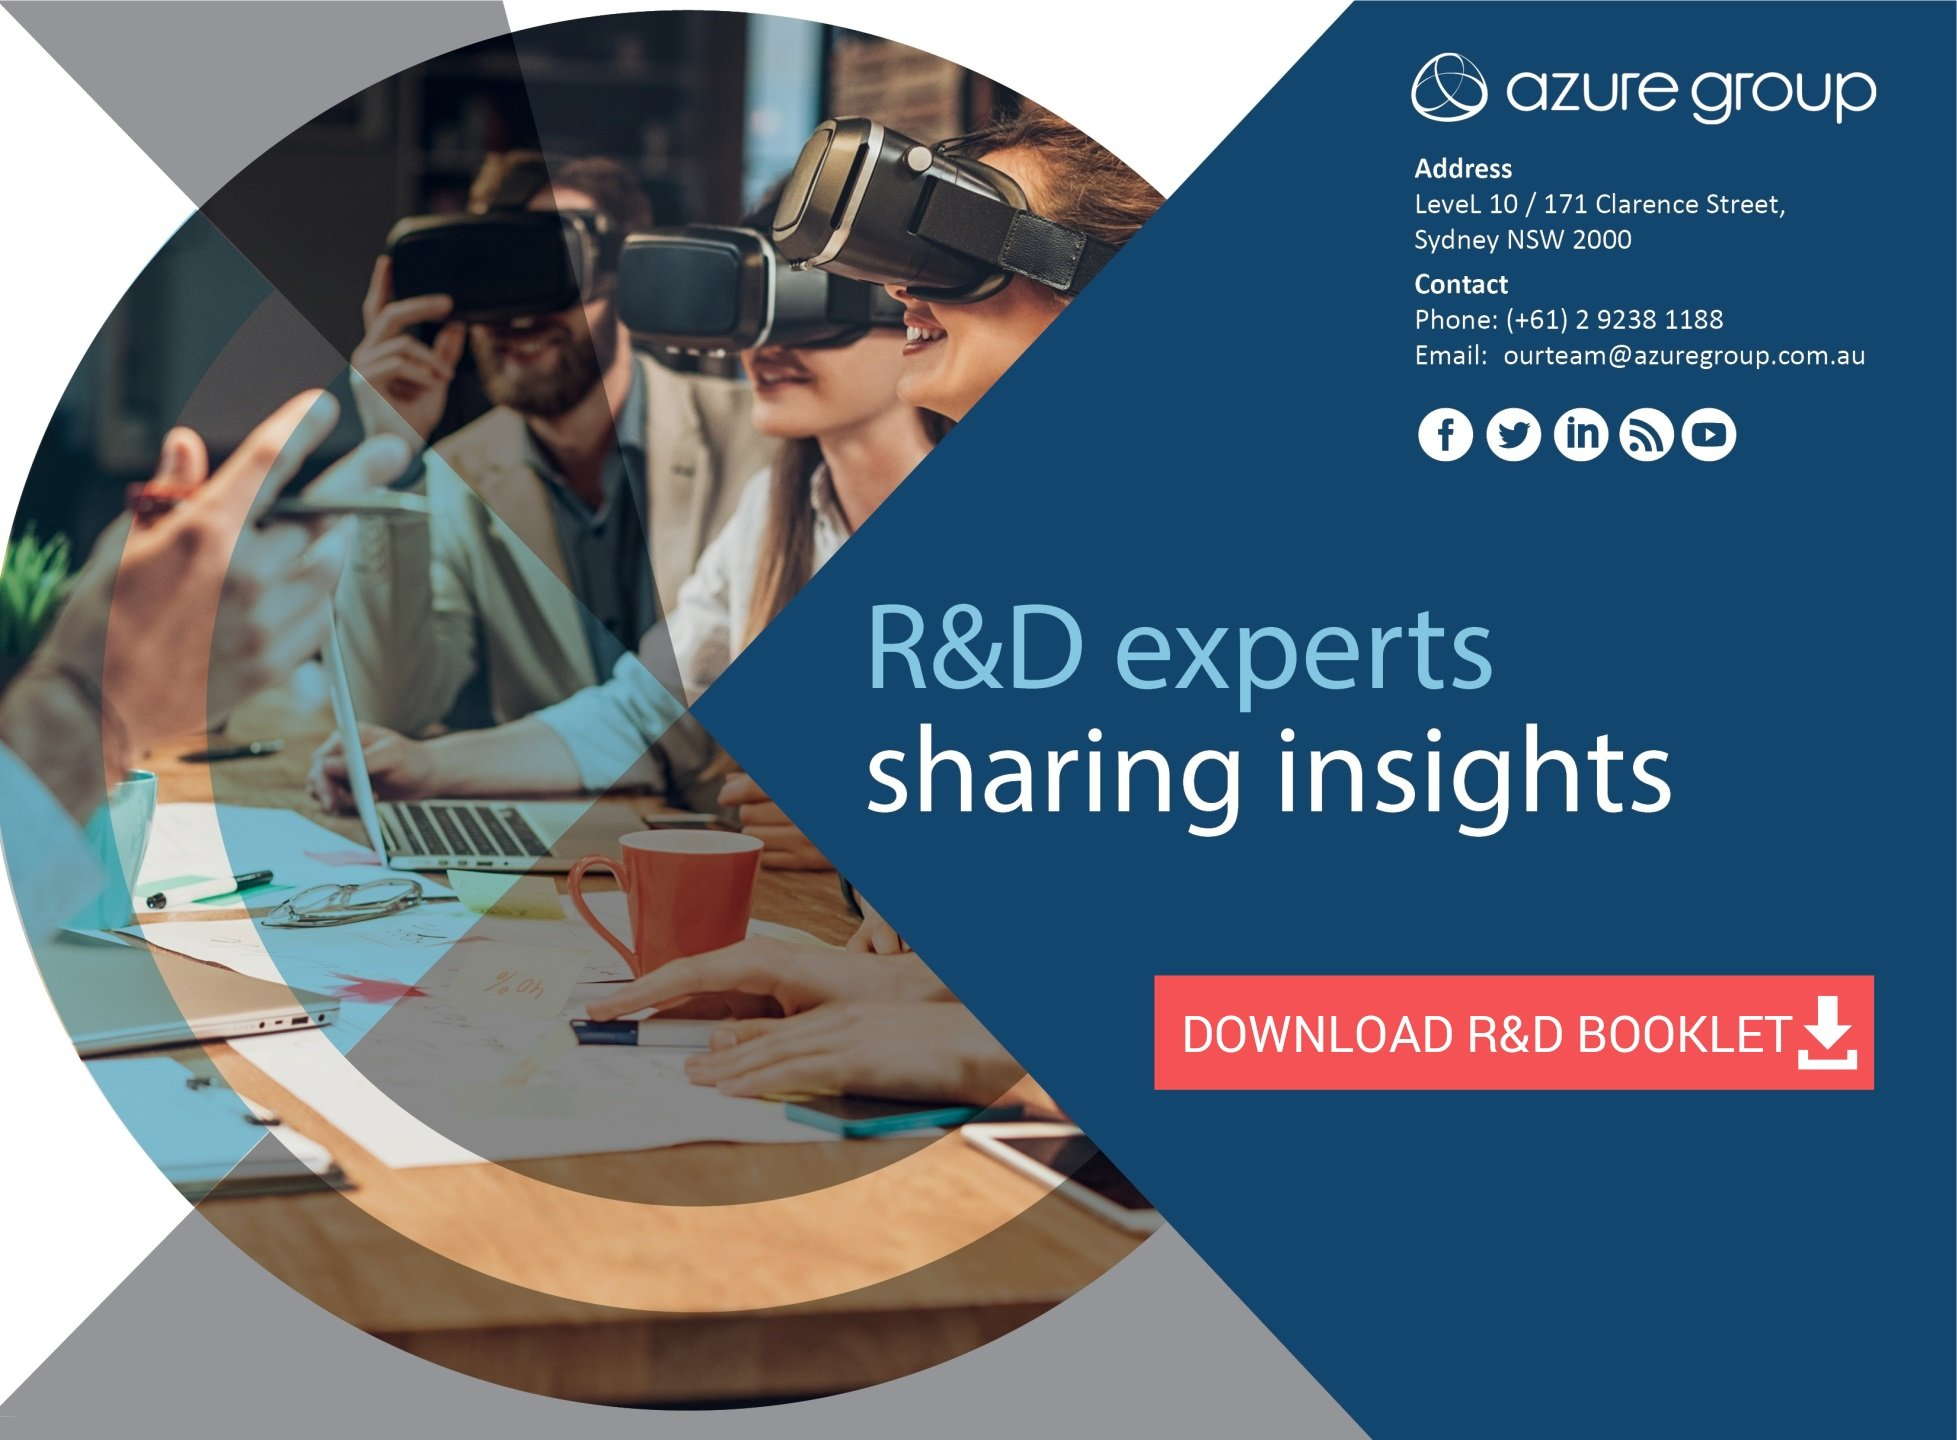 Download R&D booklet - Azure Group R&D Experts-1